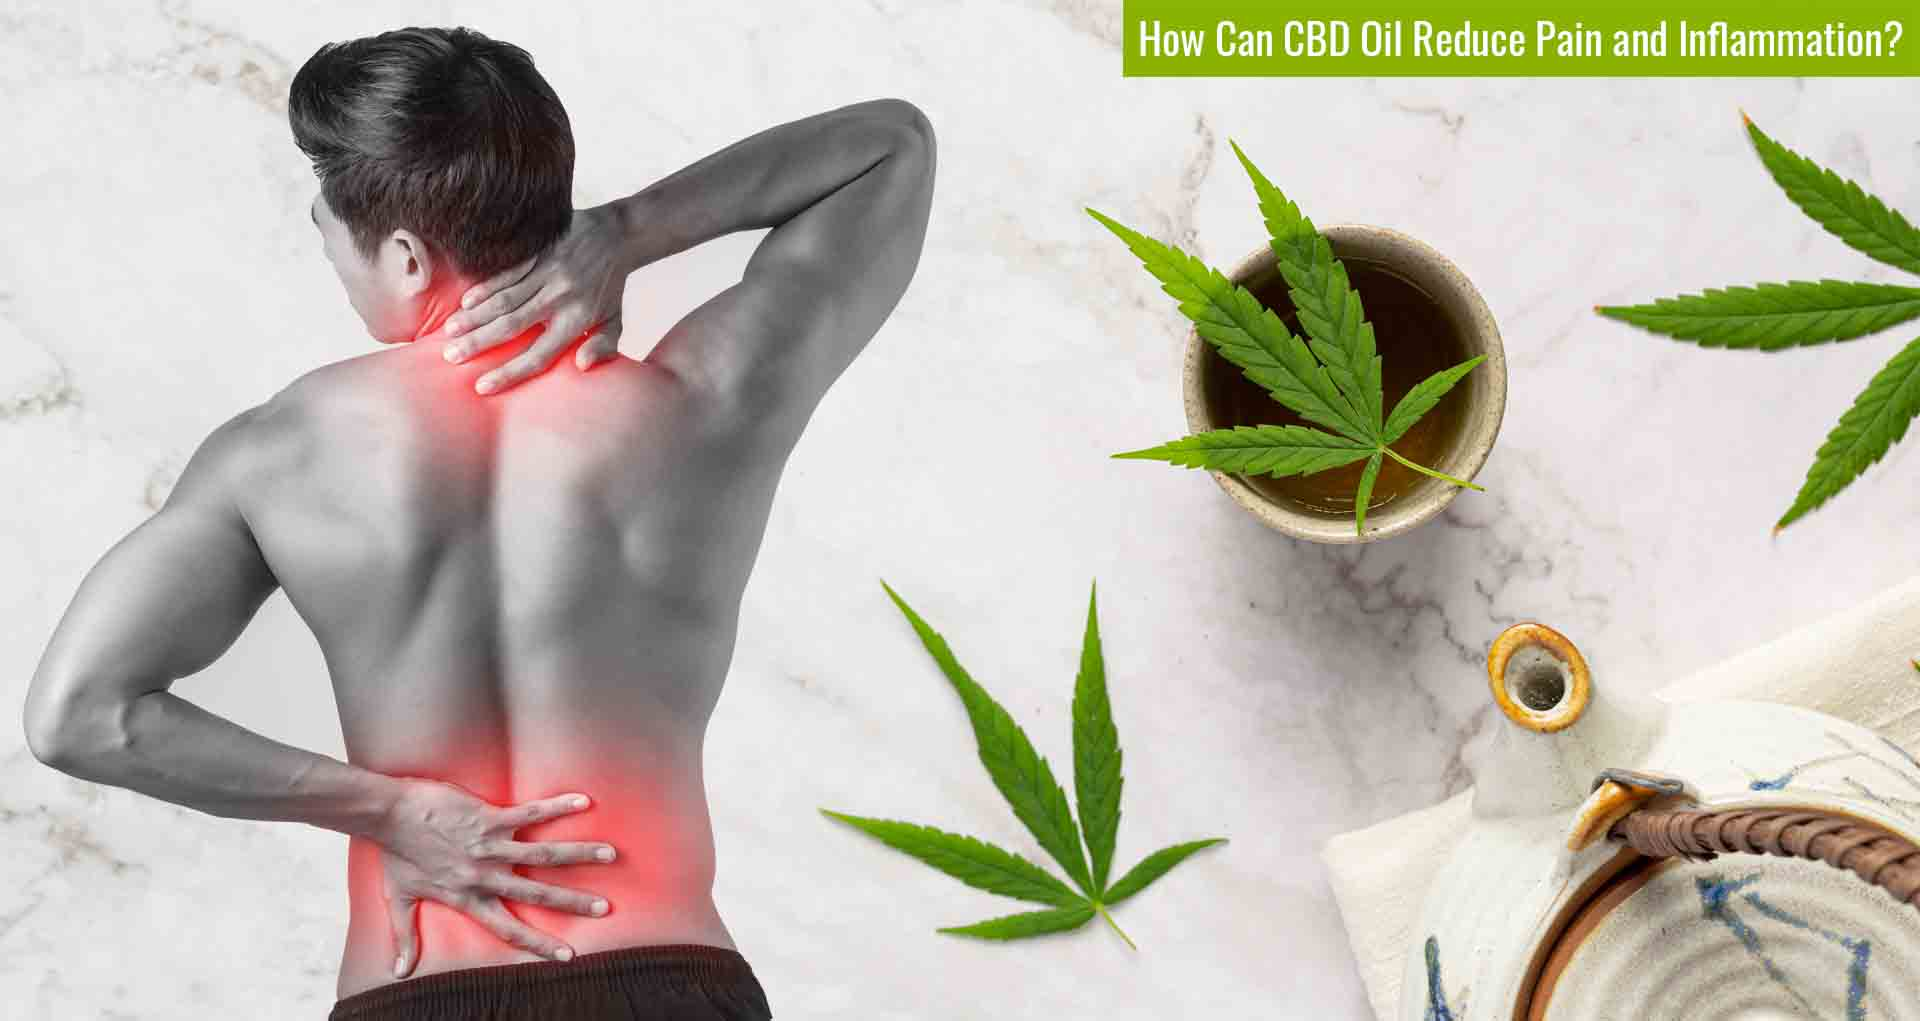 How Can CBD Oil Reduce Pain and Inflammation?